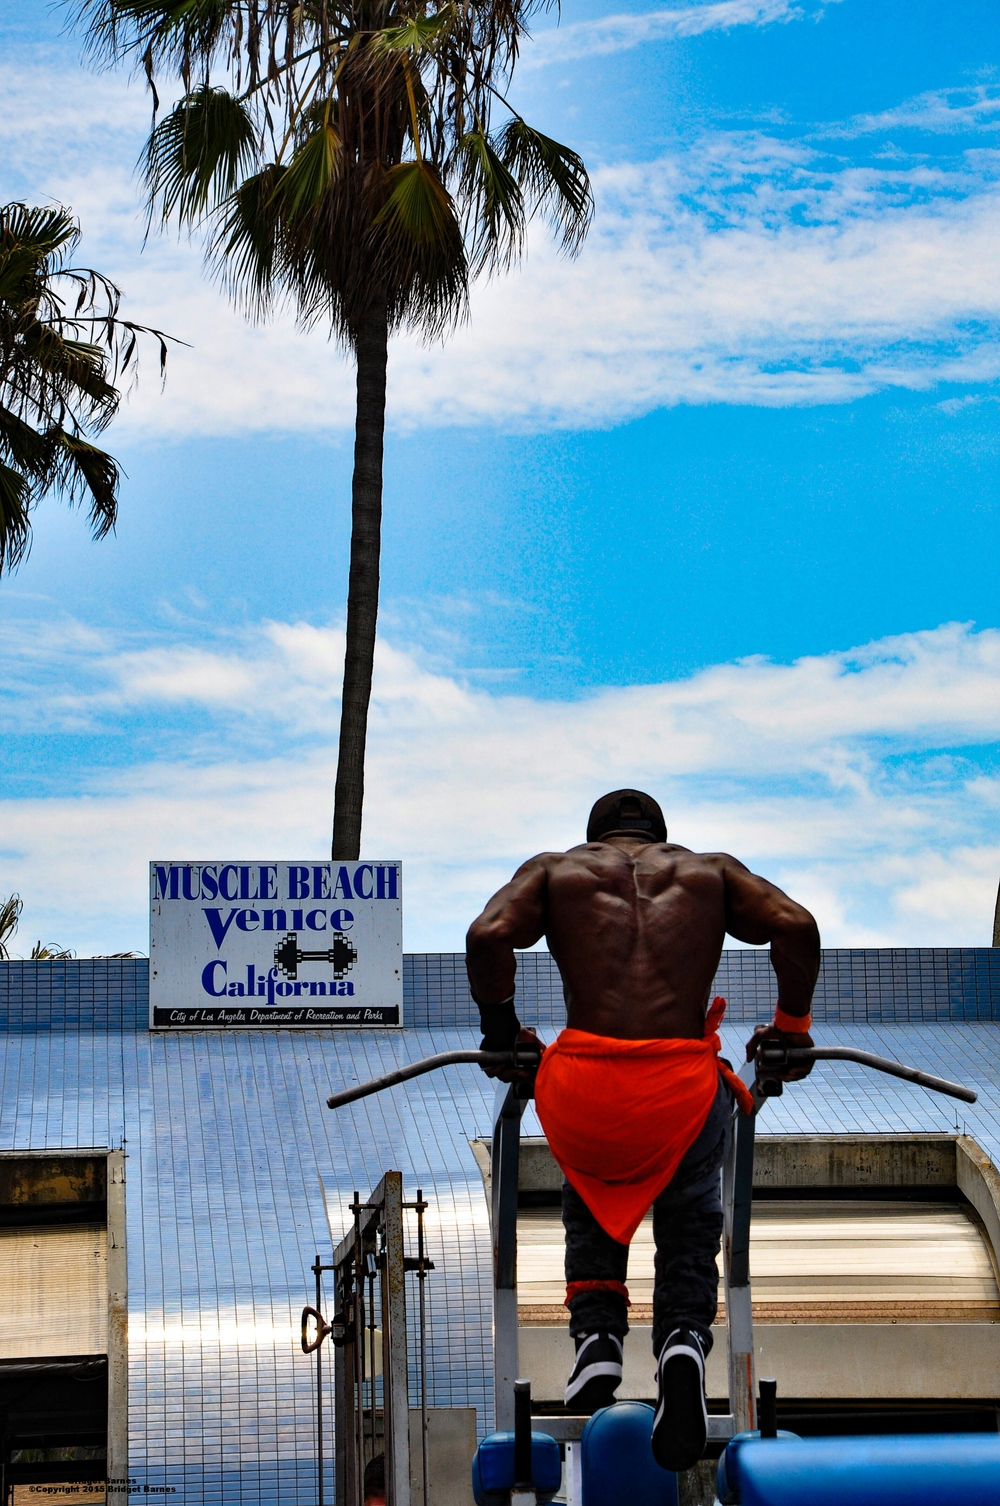 Muscle Beach  Venice Beach  ©Copyright 2015 Bridget Barnes